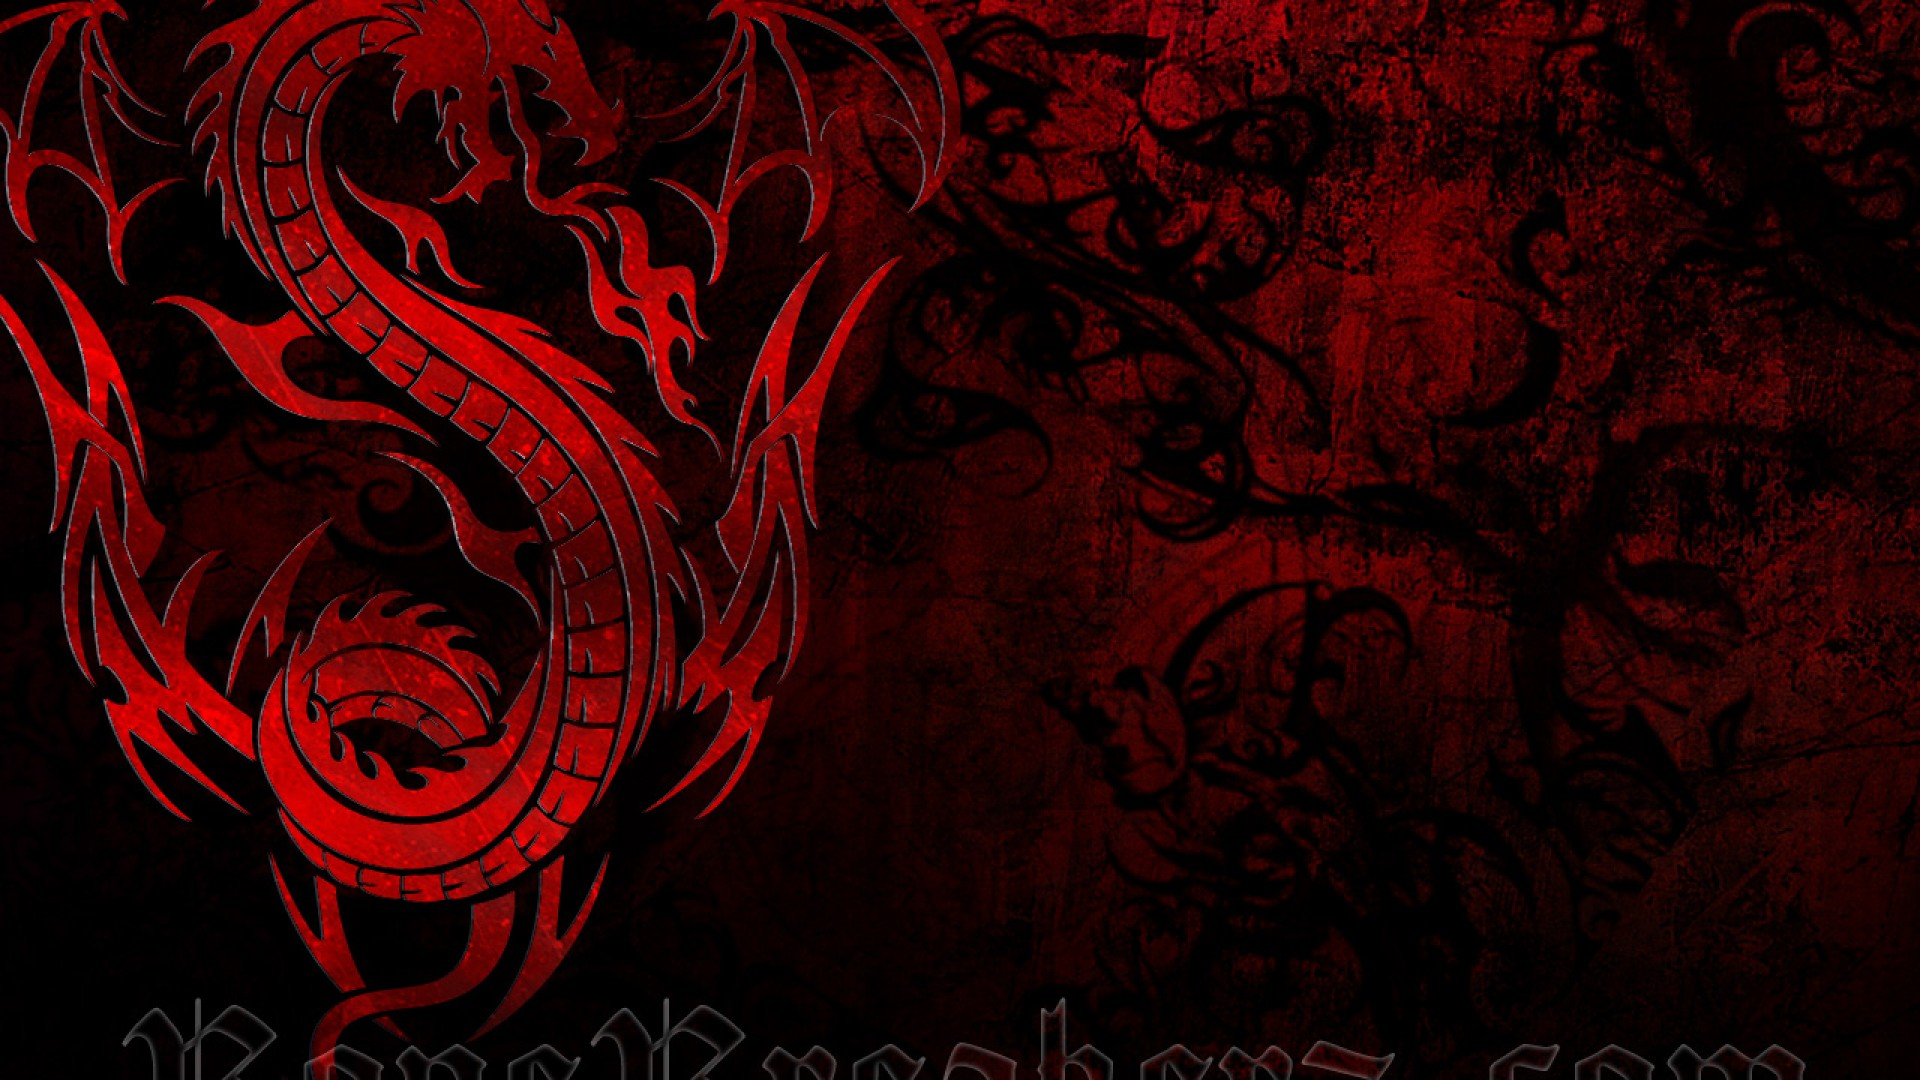 Download free tribal wallpapers for your mobile phone most 1920x1080 voltagebd Choice Image